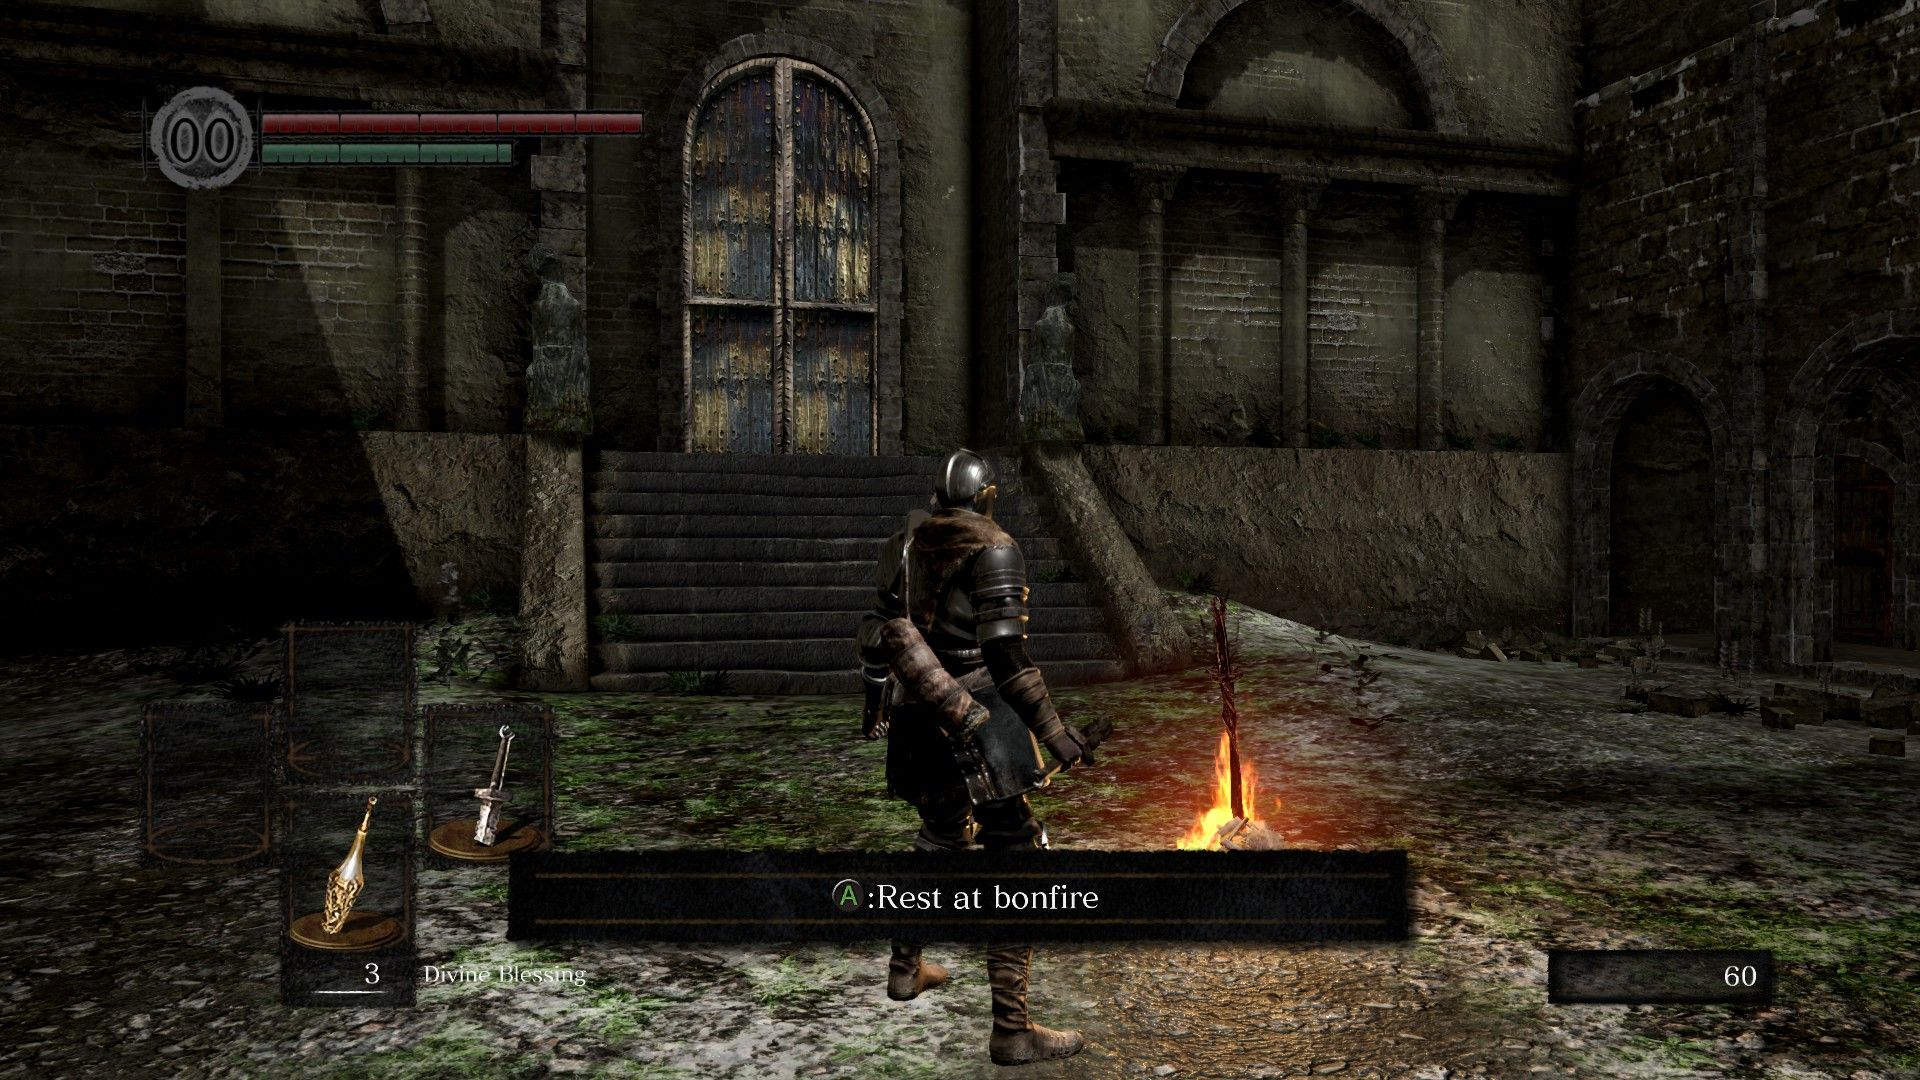 Dark Souls Remastered Switch Guide - Tips, Tricks, Controls